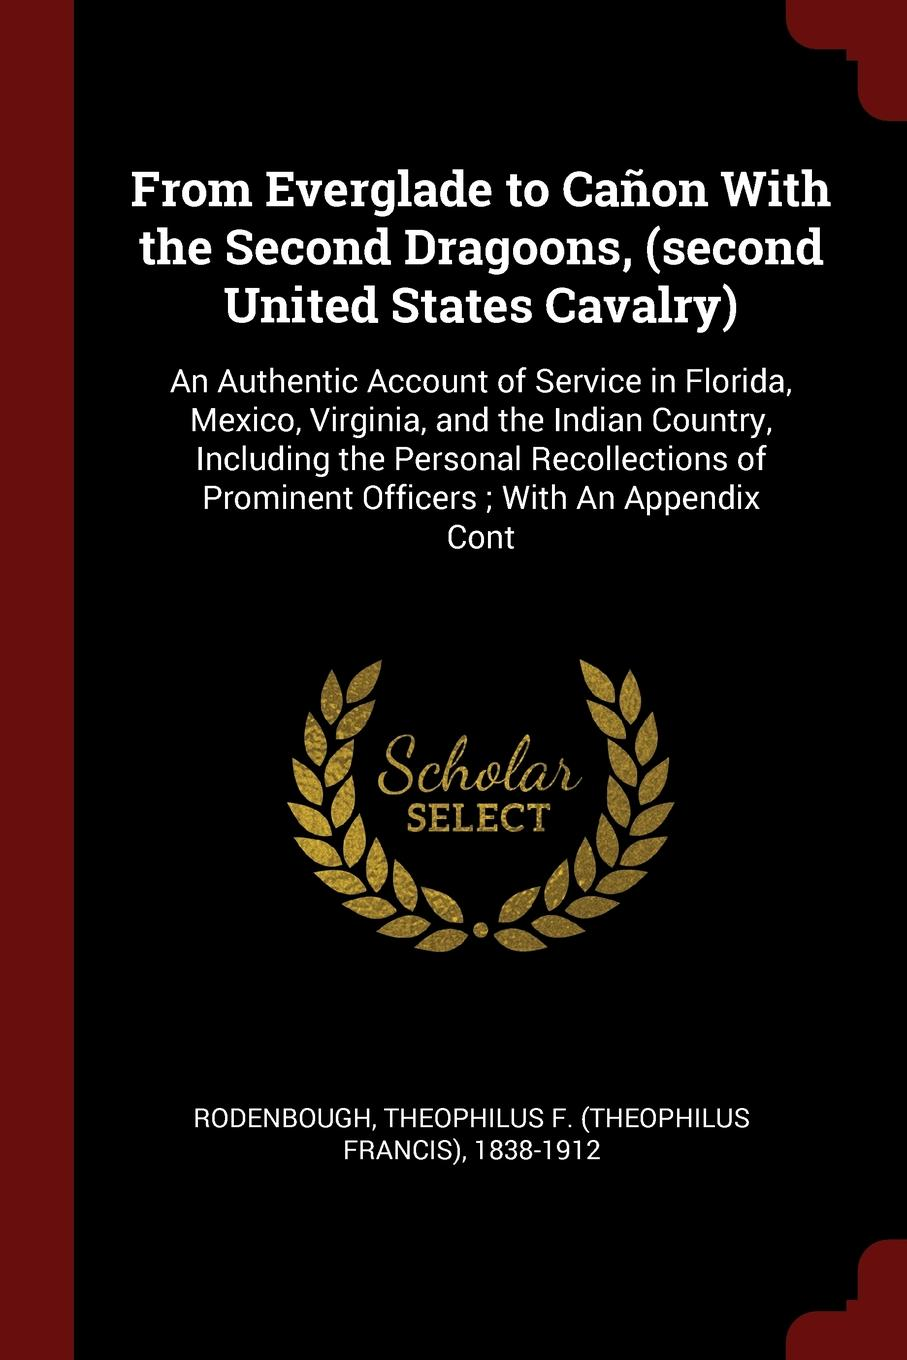 Theophilus F. 1838-1912 Rodenbough From Everglade to Canon With the Second Dragoons, (second United States Cavalry). An Authentic Account of Service in Florida, Mexico, Virginia, and the Indian Country, Including the Personal Recollections of Prominent Officers ; With An Appendix Cont [zob] the united states bussmann 170m3815 200a 690v fuse original authentic